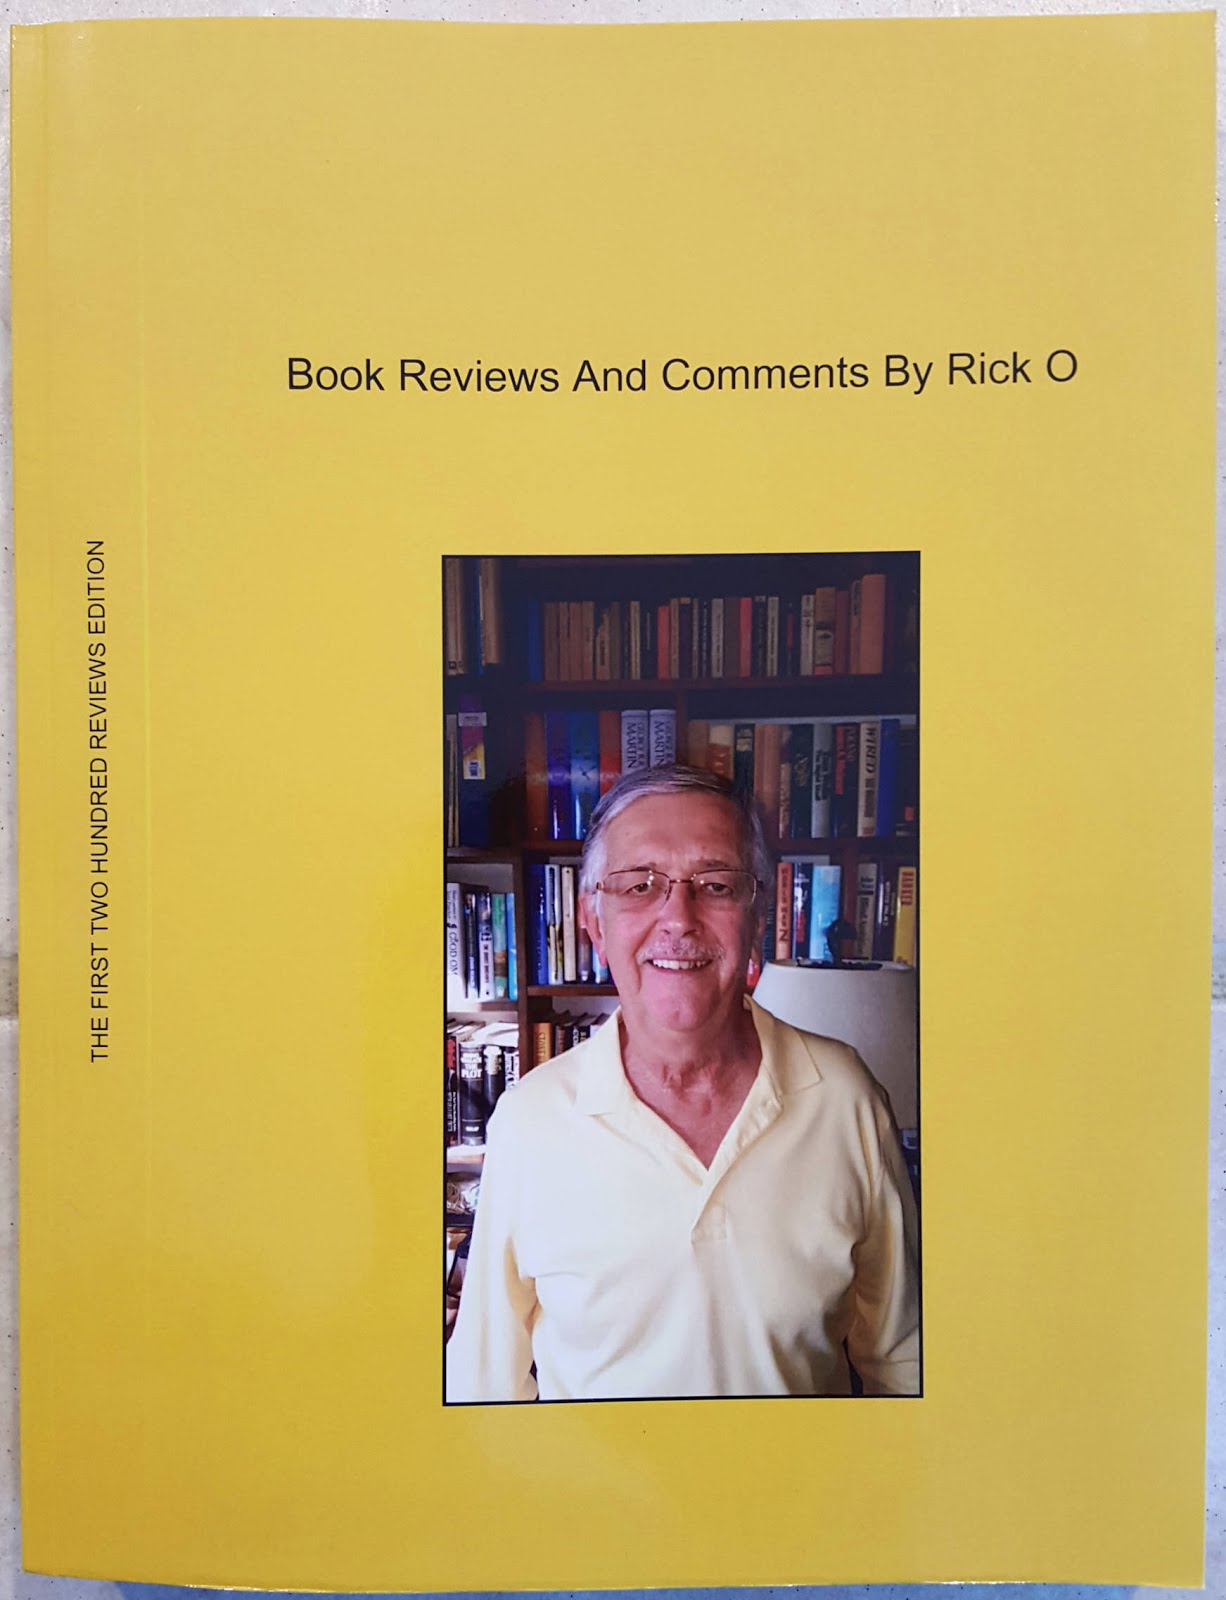 First 200 reviews edition on sale!